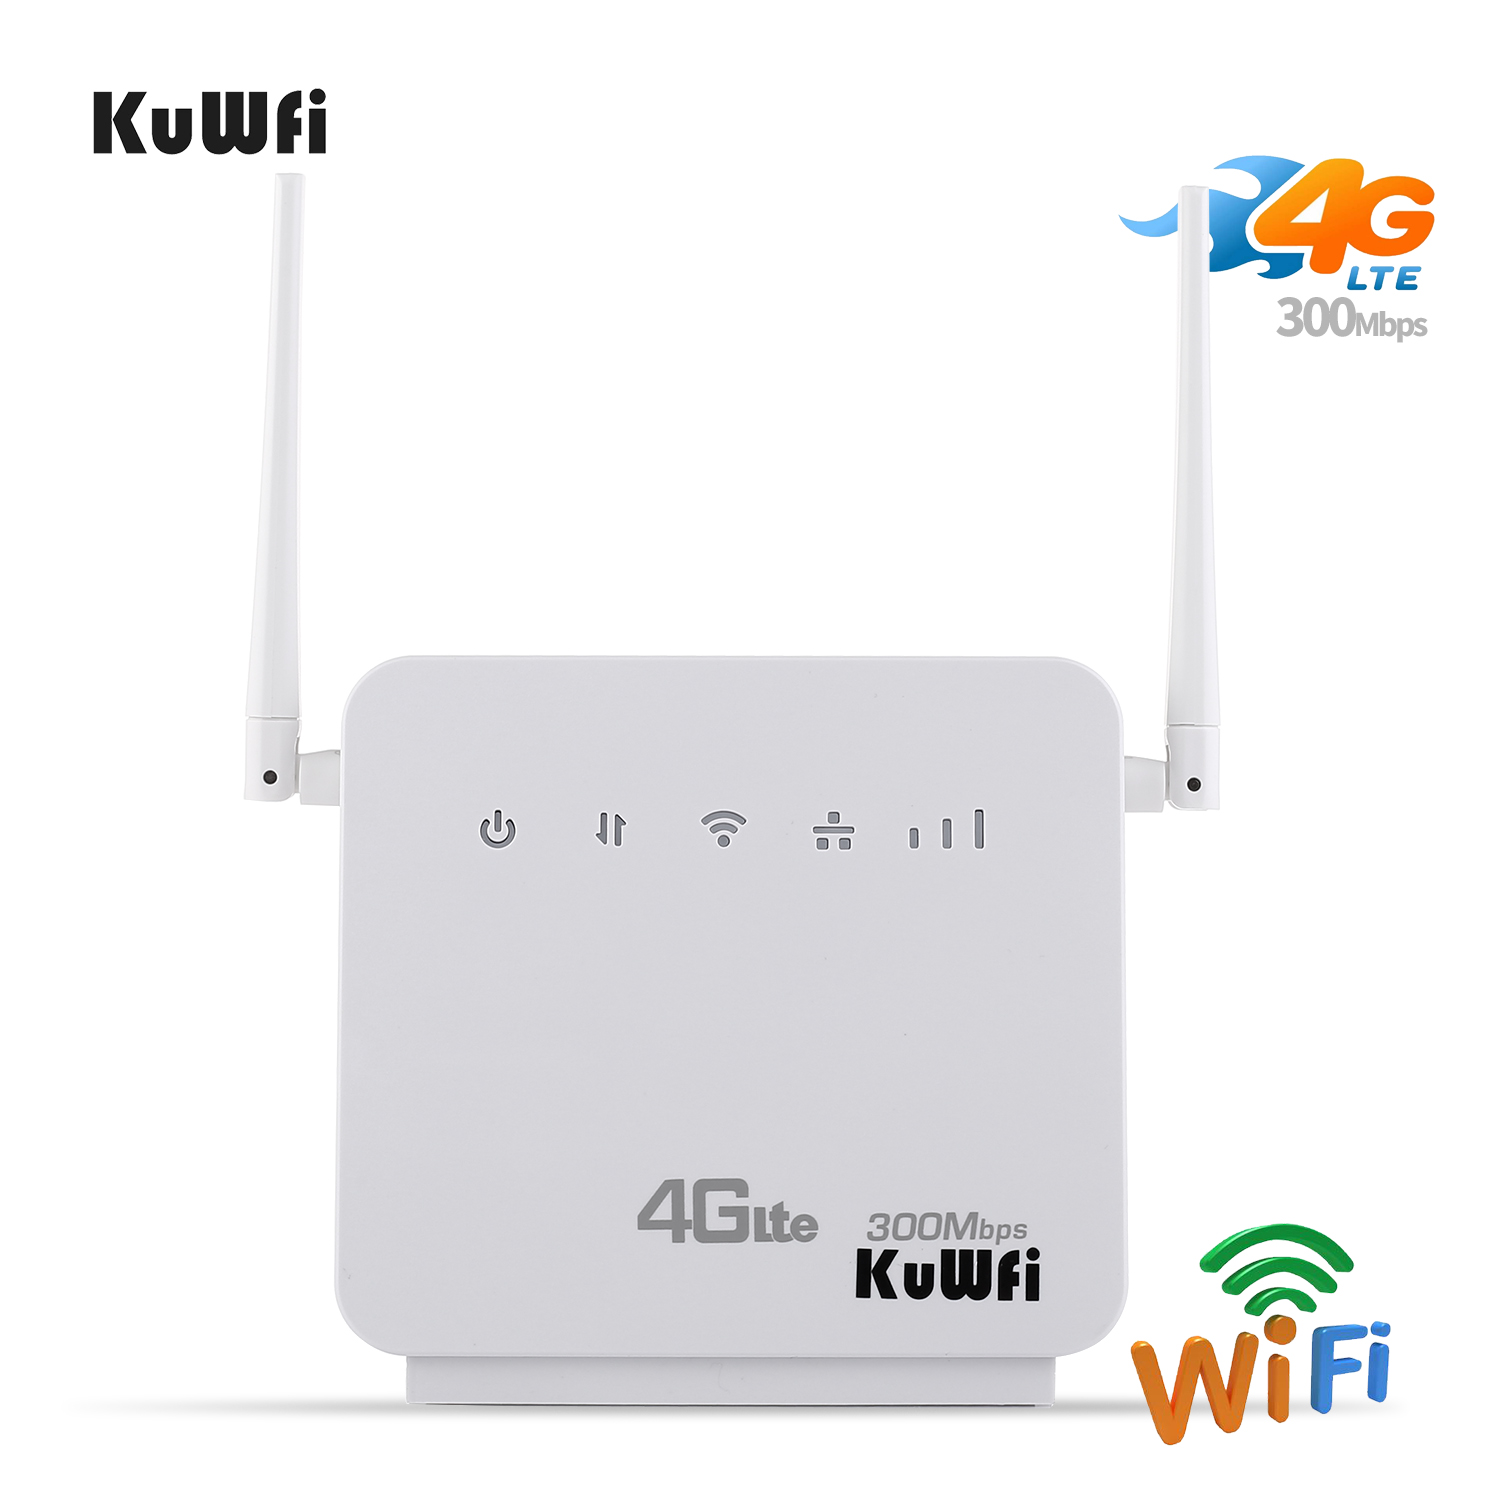 Unlocked 300Mbps Wifi Routers 4G LTE CPE Mobile Router with LAN Port Support SIM card and Europe Asia Middle East Africa